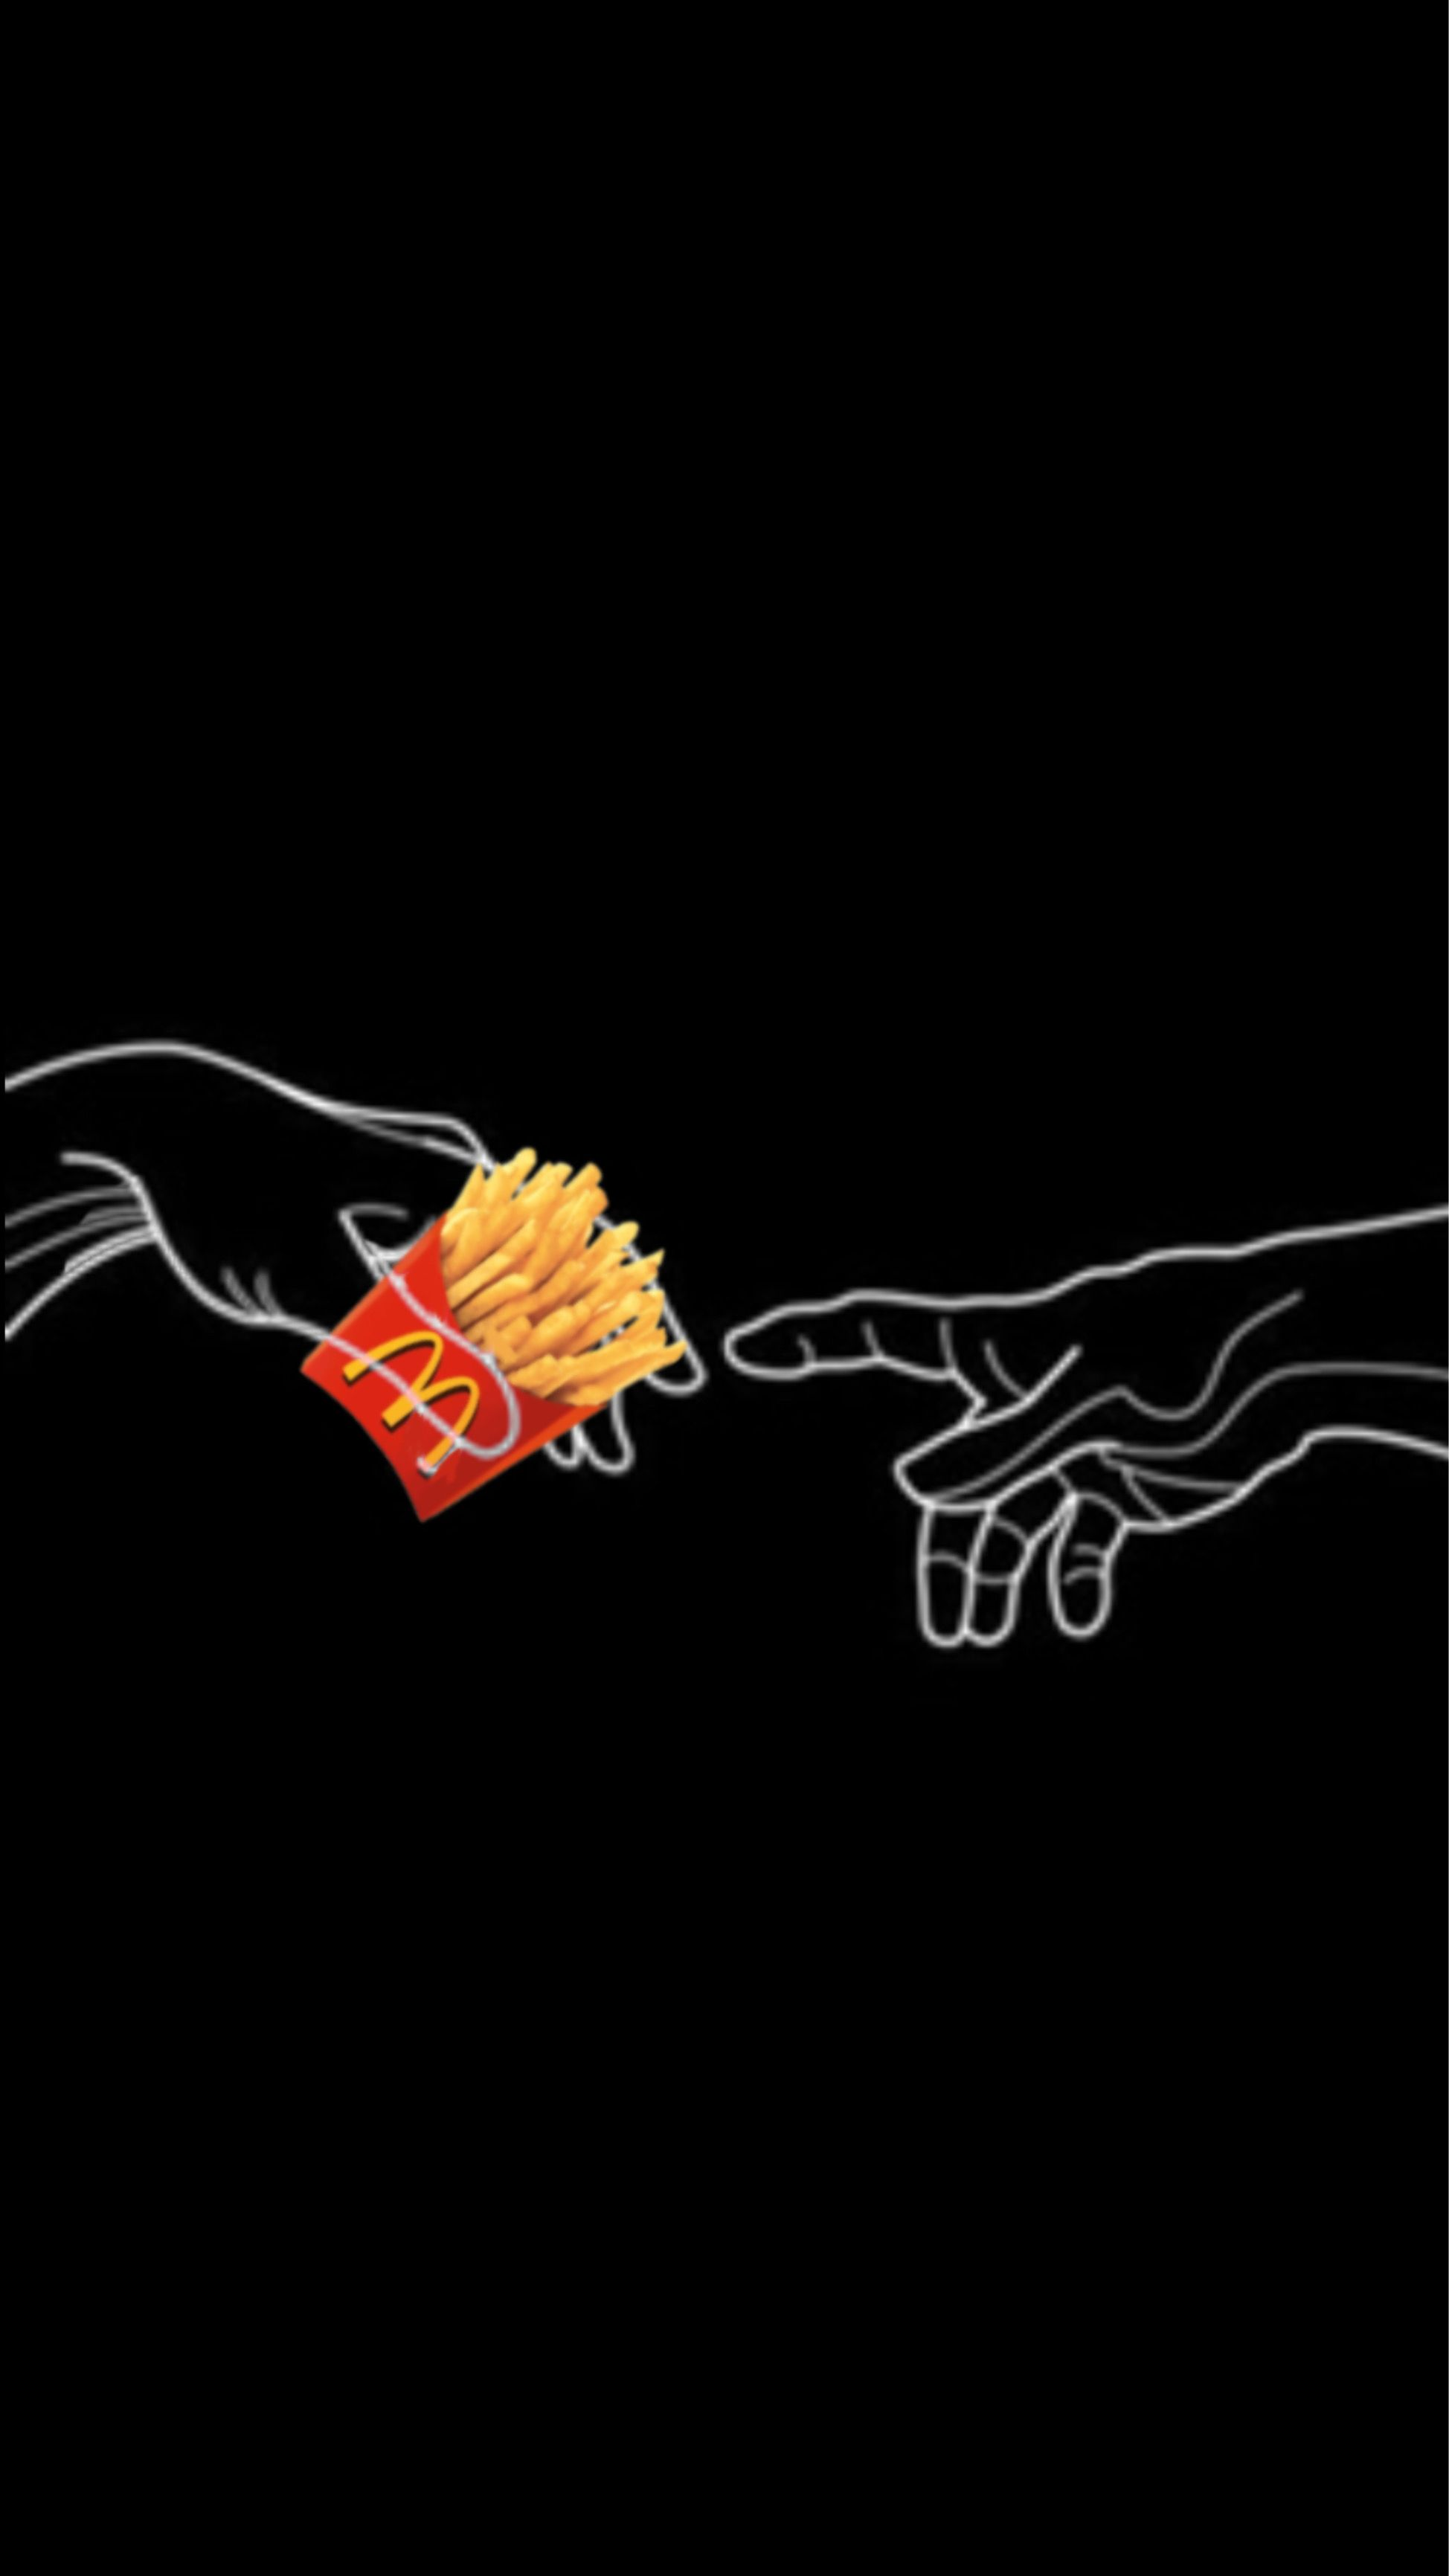 Pass The Fries Iphone Wallpaper Cute Wallpapers Neon Aesthetic